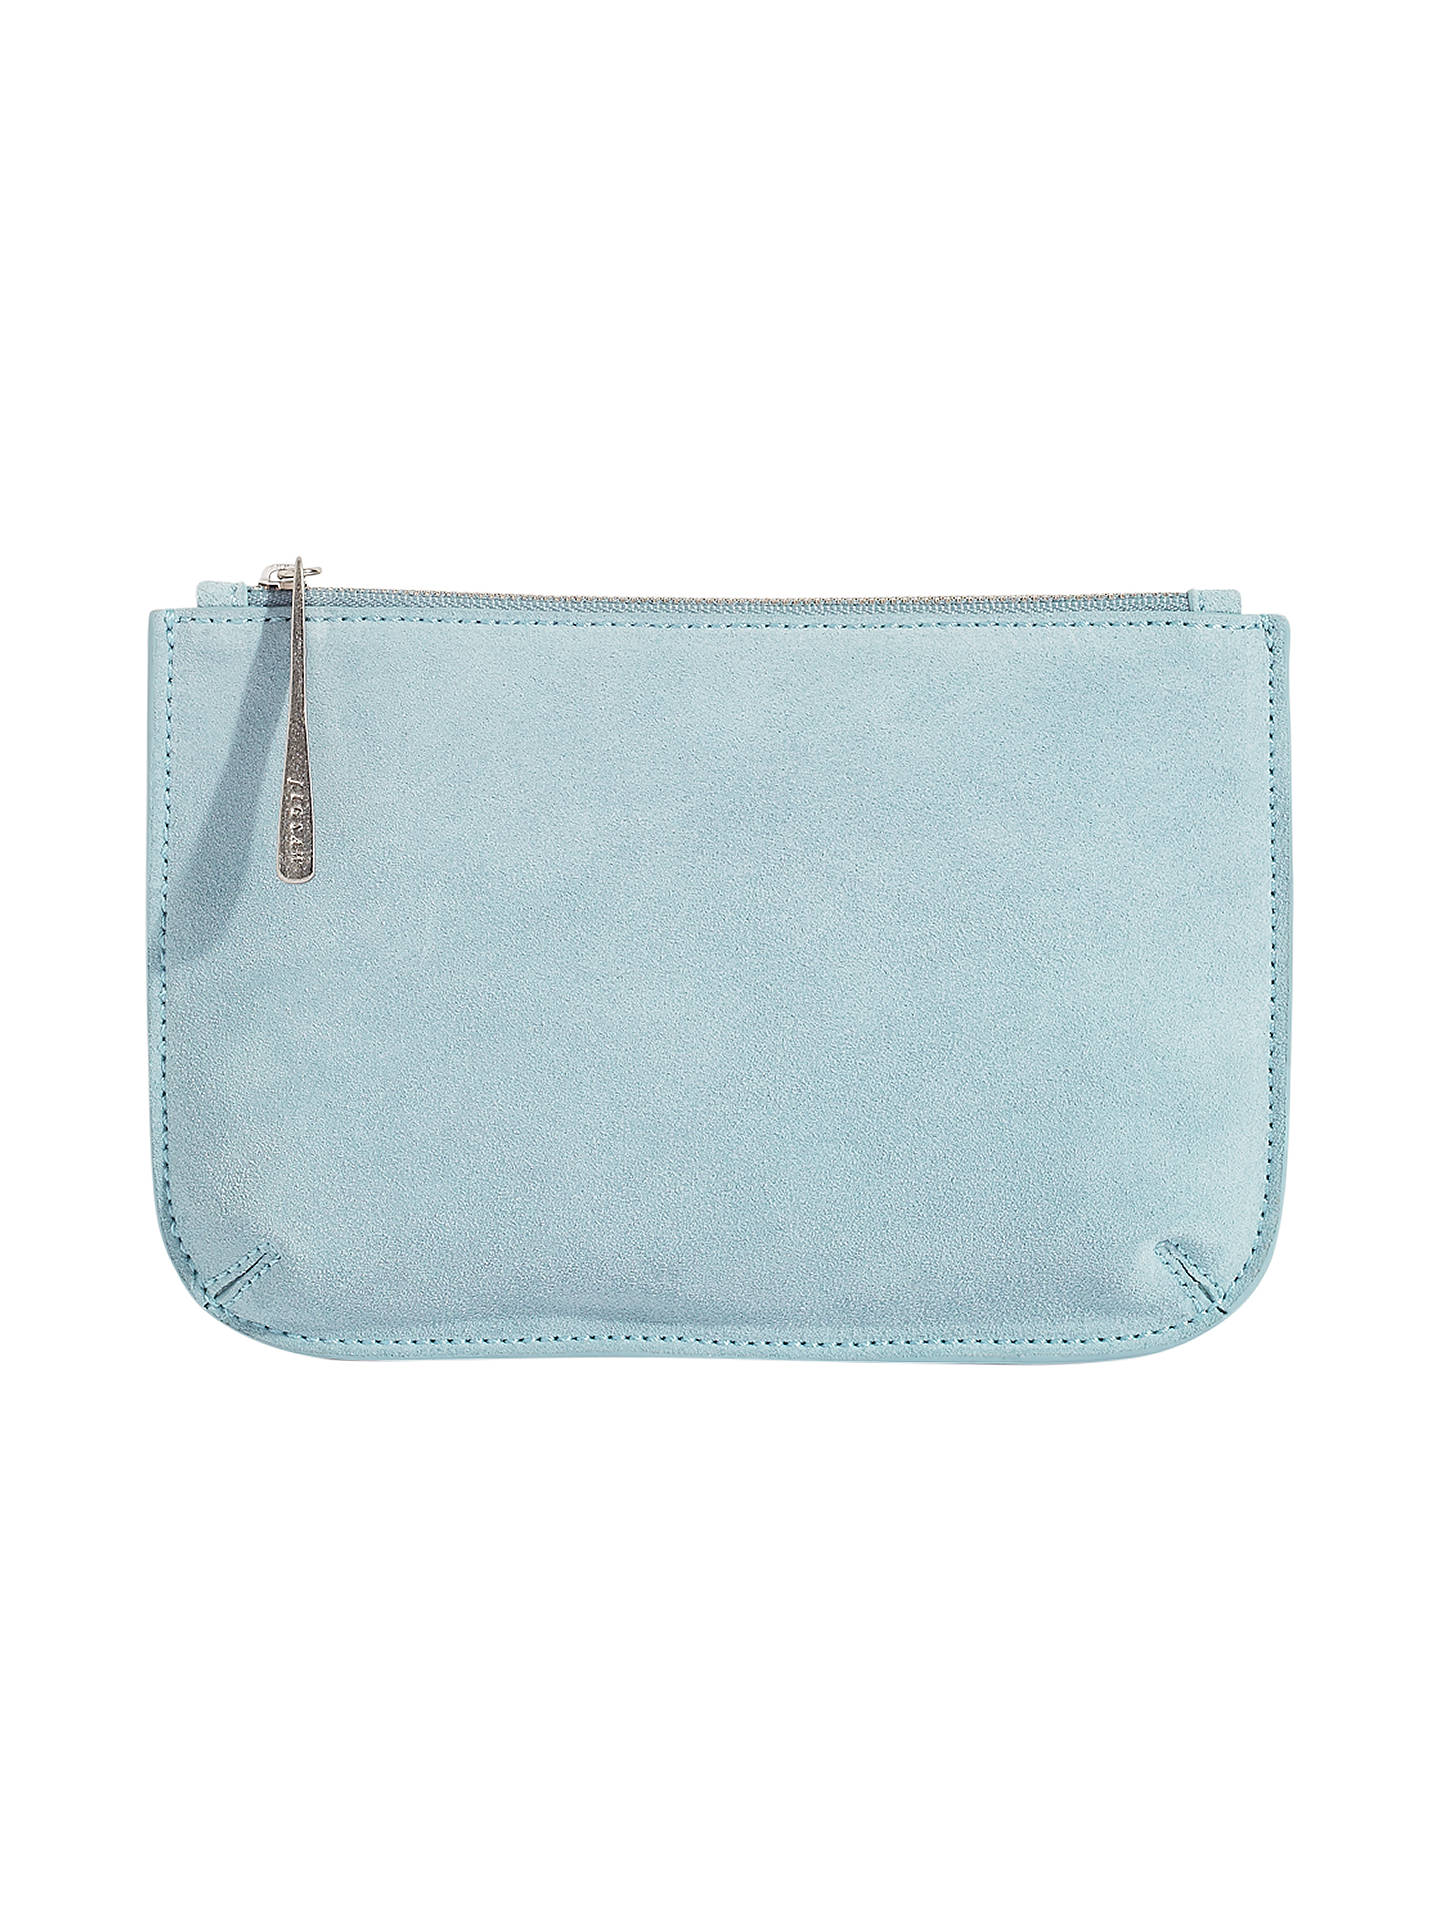 9f03bc35ff2 Buy Jigsaw Alba Medium Textured Leather Pouch, Blossom Blue Online at  johnlewis.com ...